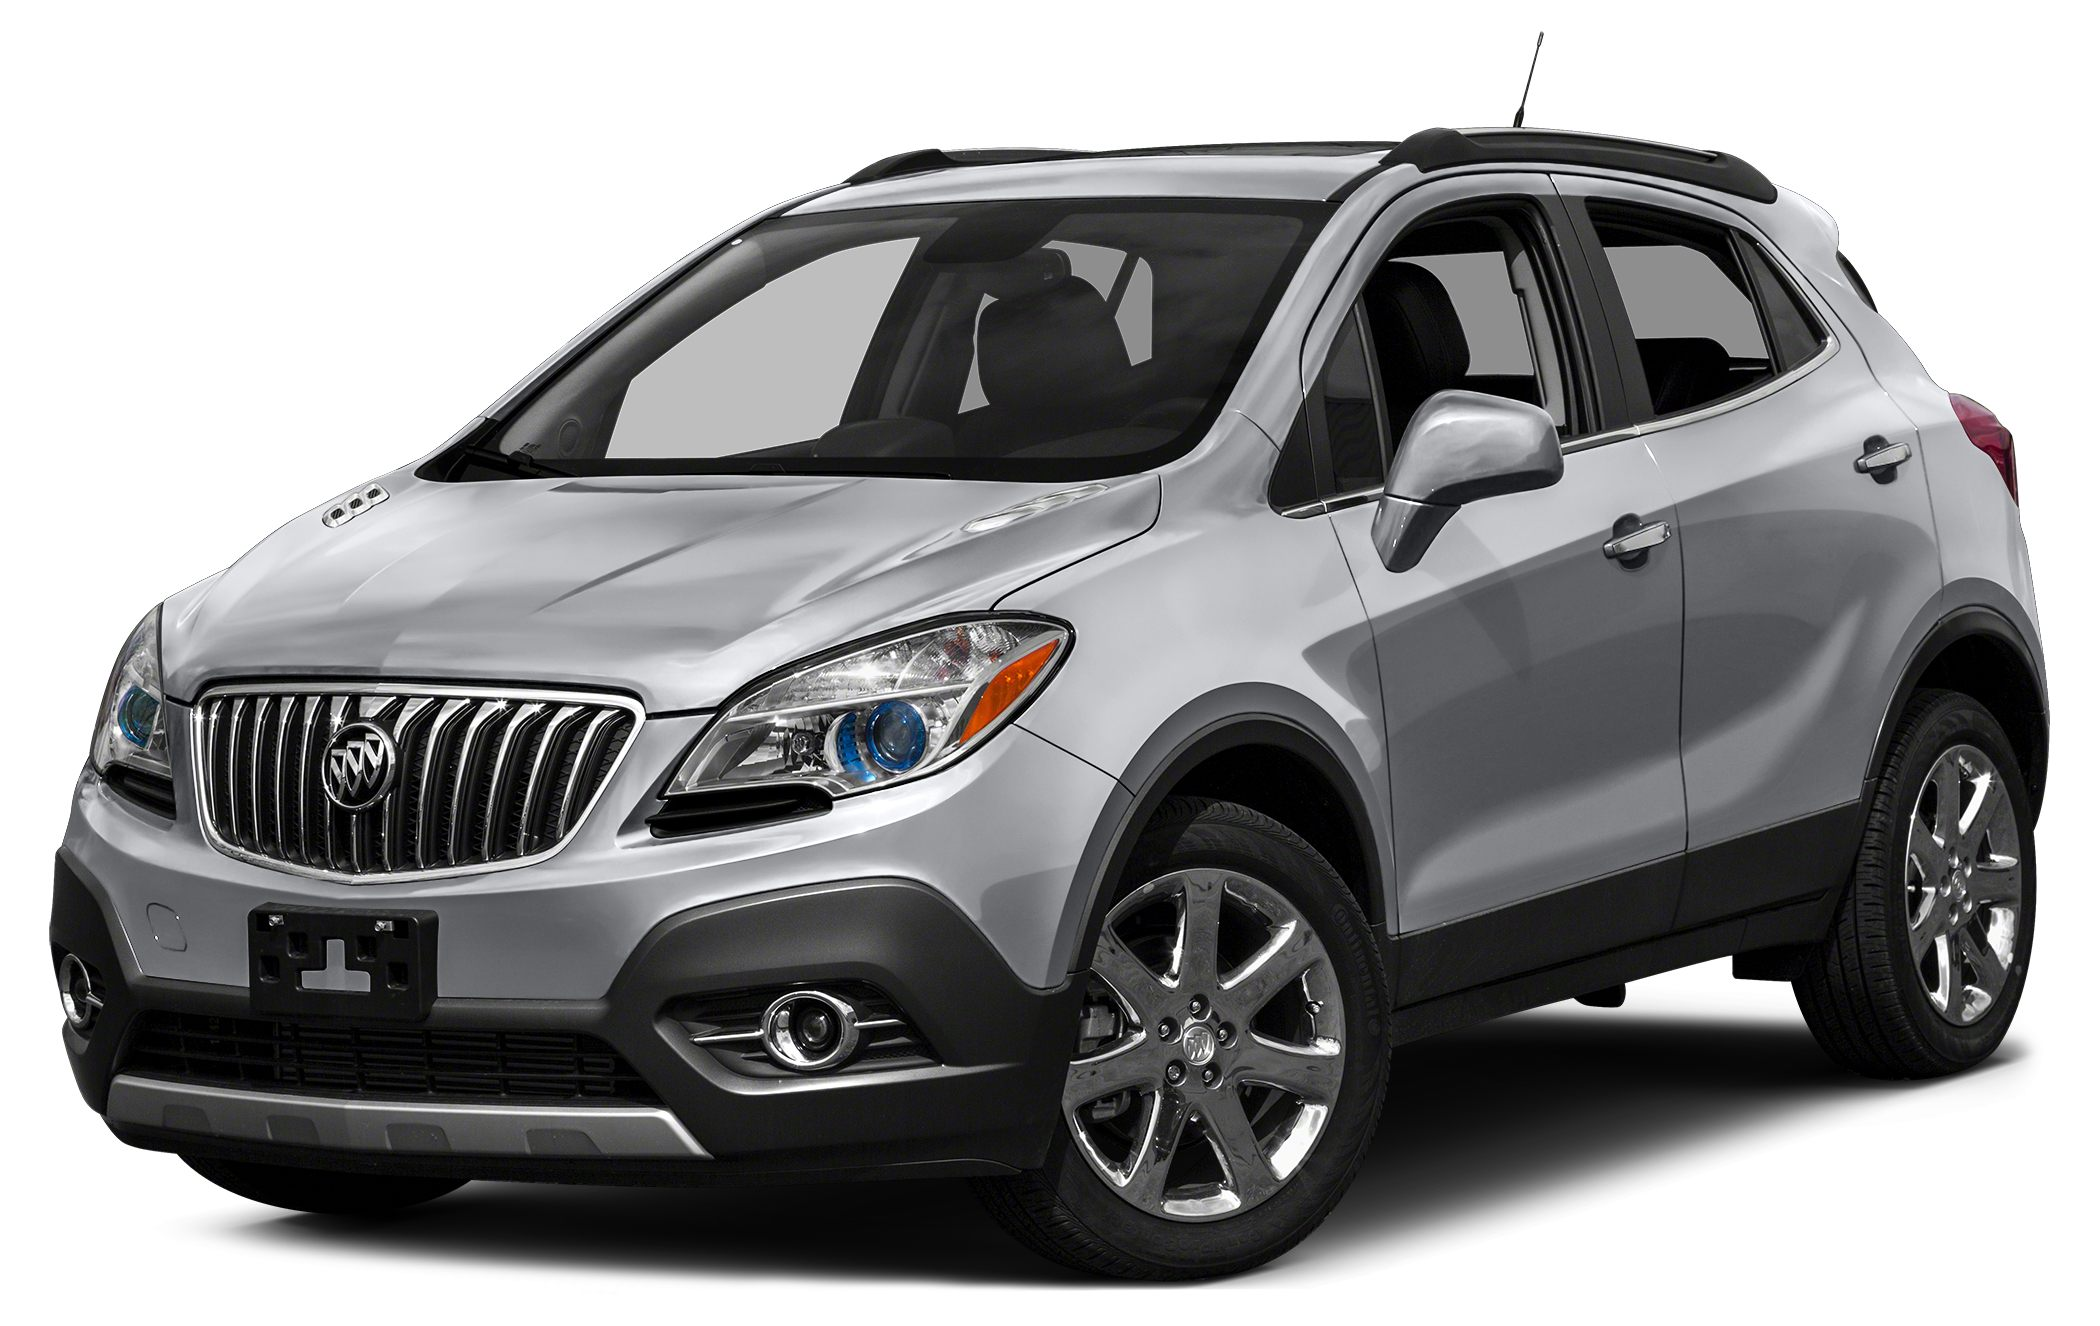 2016 Buick Encore Convenience In this 2016 Buick Encore Convenience enjoy every drive with prime